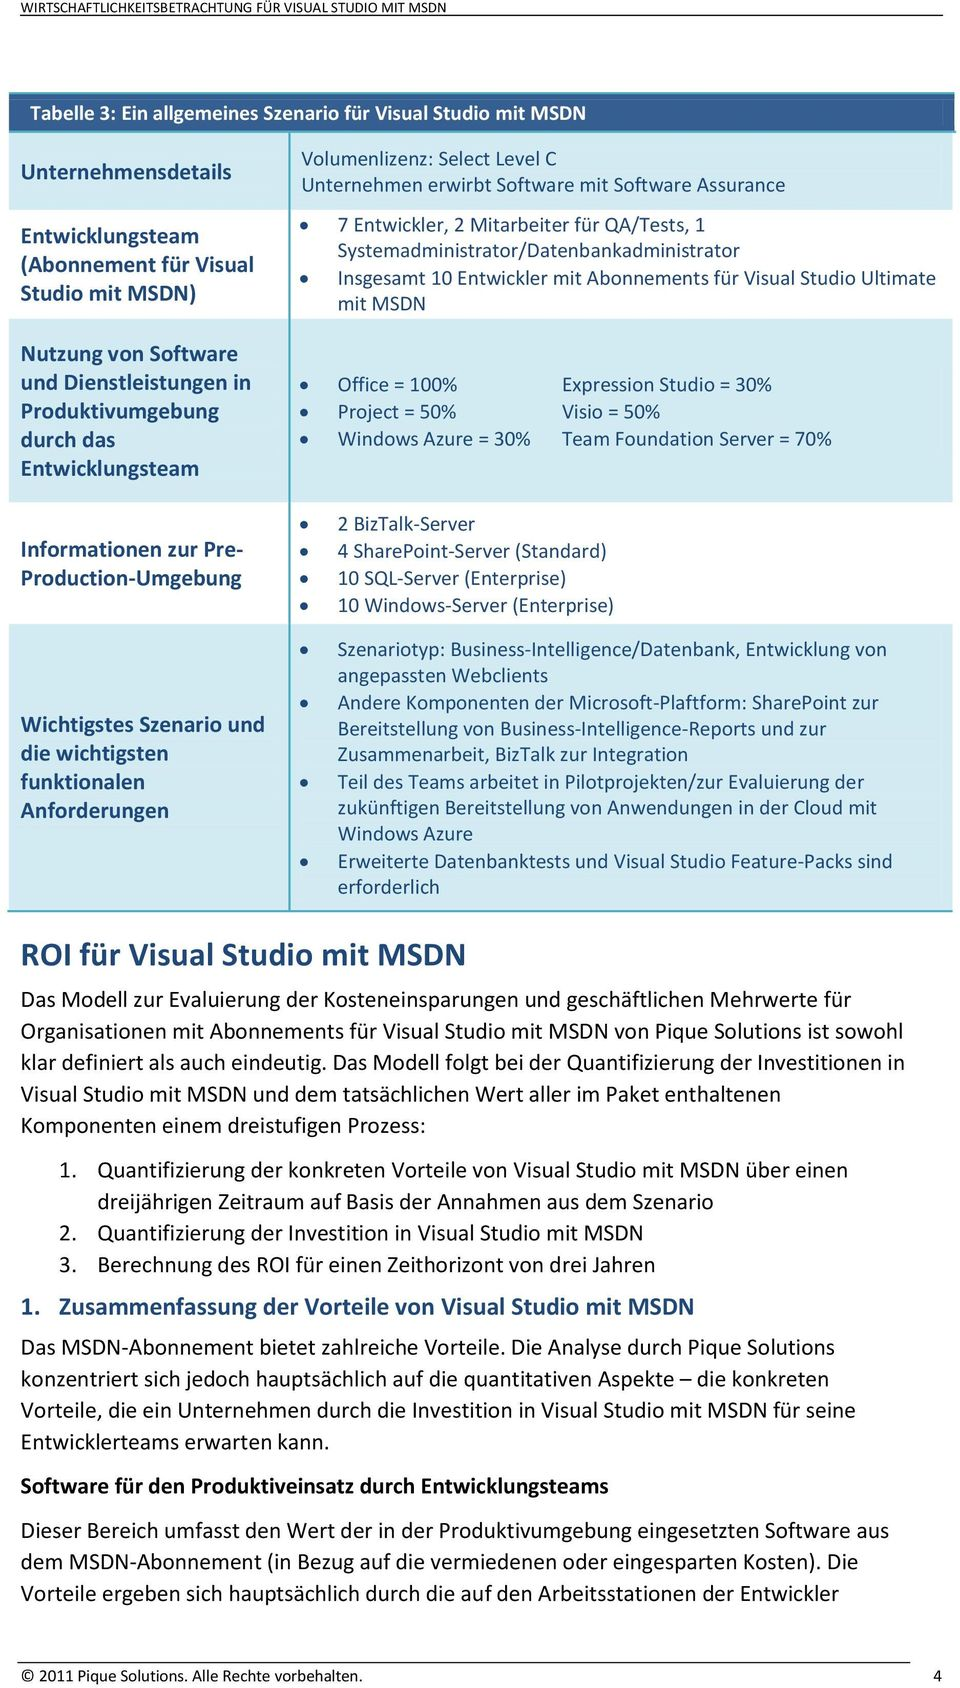 Systemadministrator/Datenbankadministrator Insgesamt 10 Entwickler mit Abonnements für Visual Studio Ultimate mit MSDN Office = 100% Expression Studio = 30% Project = 50% Visio = 50% Windows Azure =